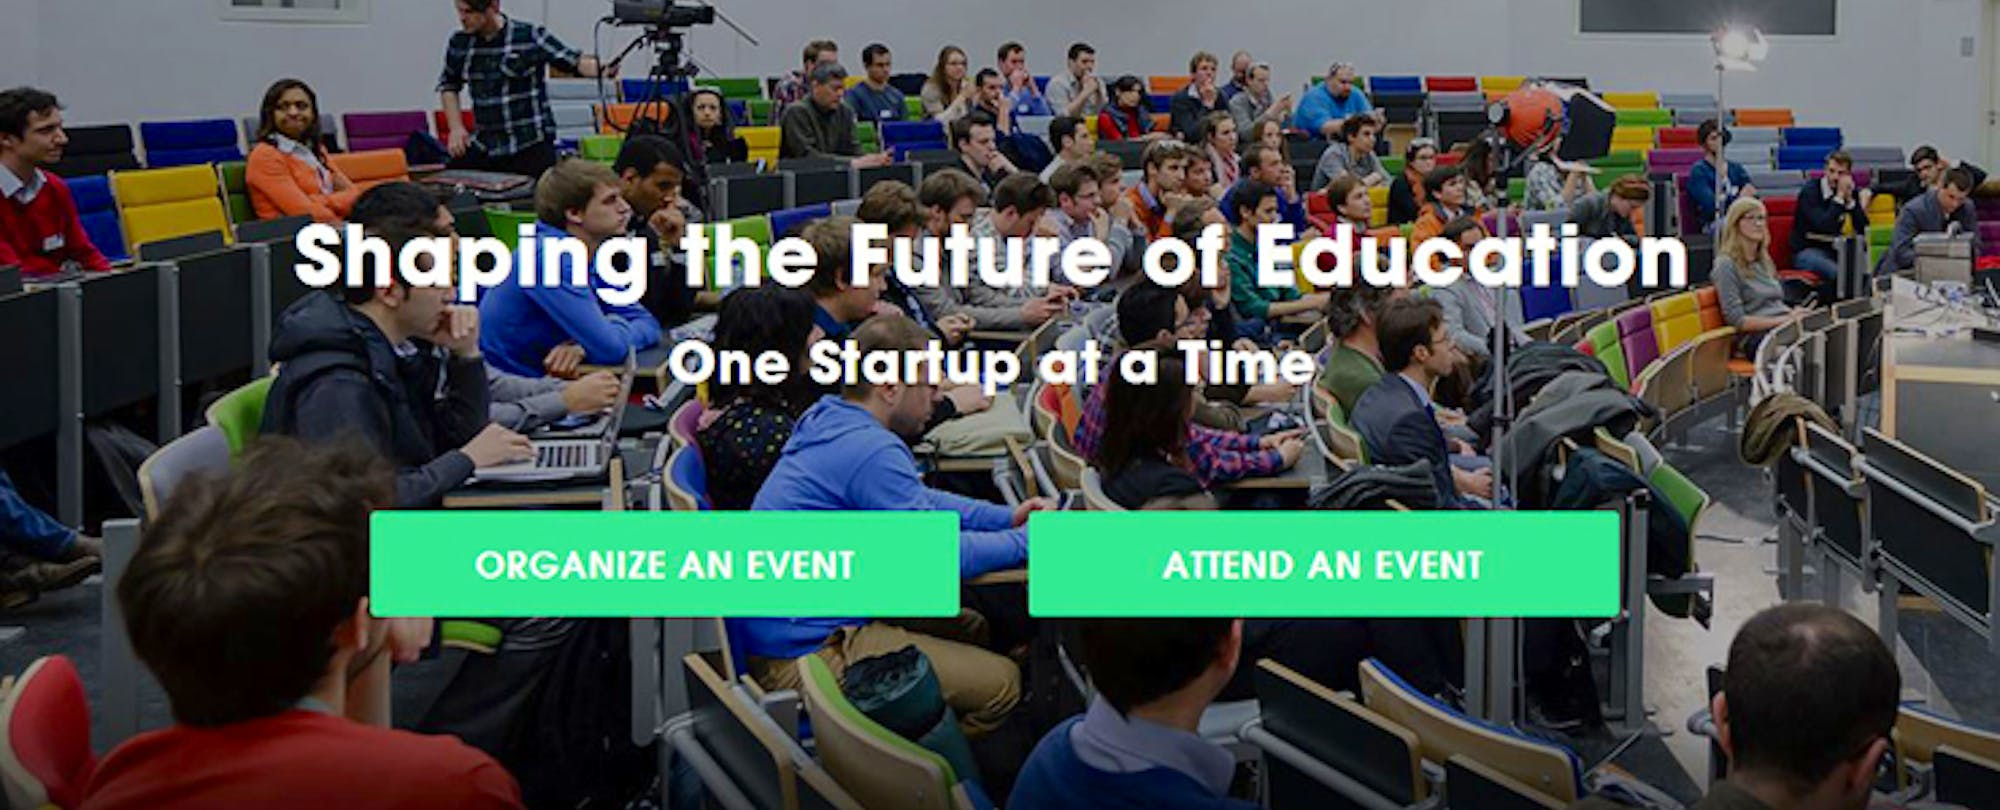 Ten Tips for Triumphing at Startup Weekend